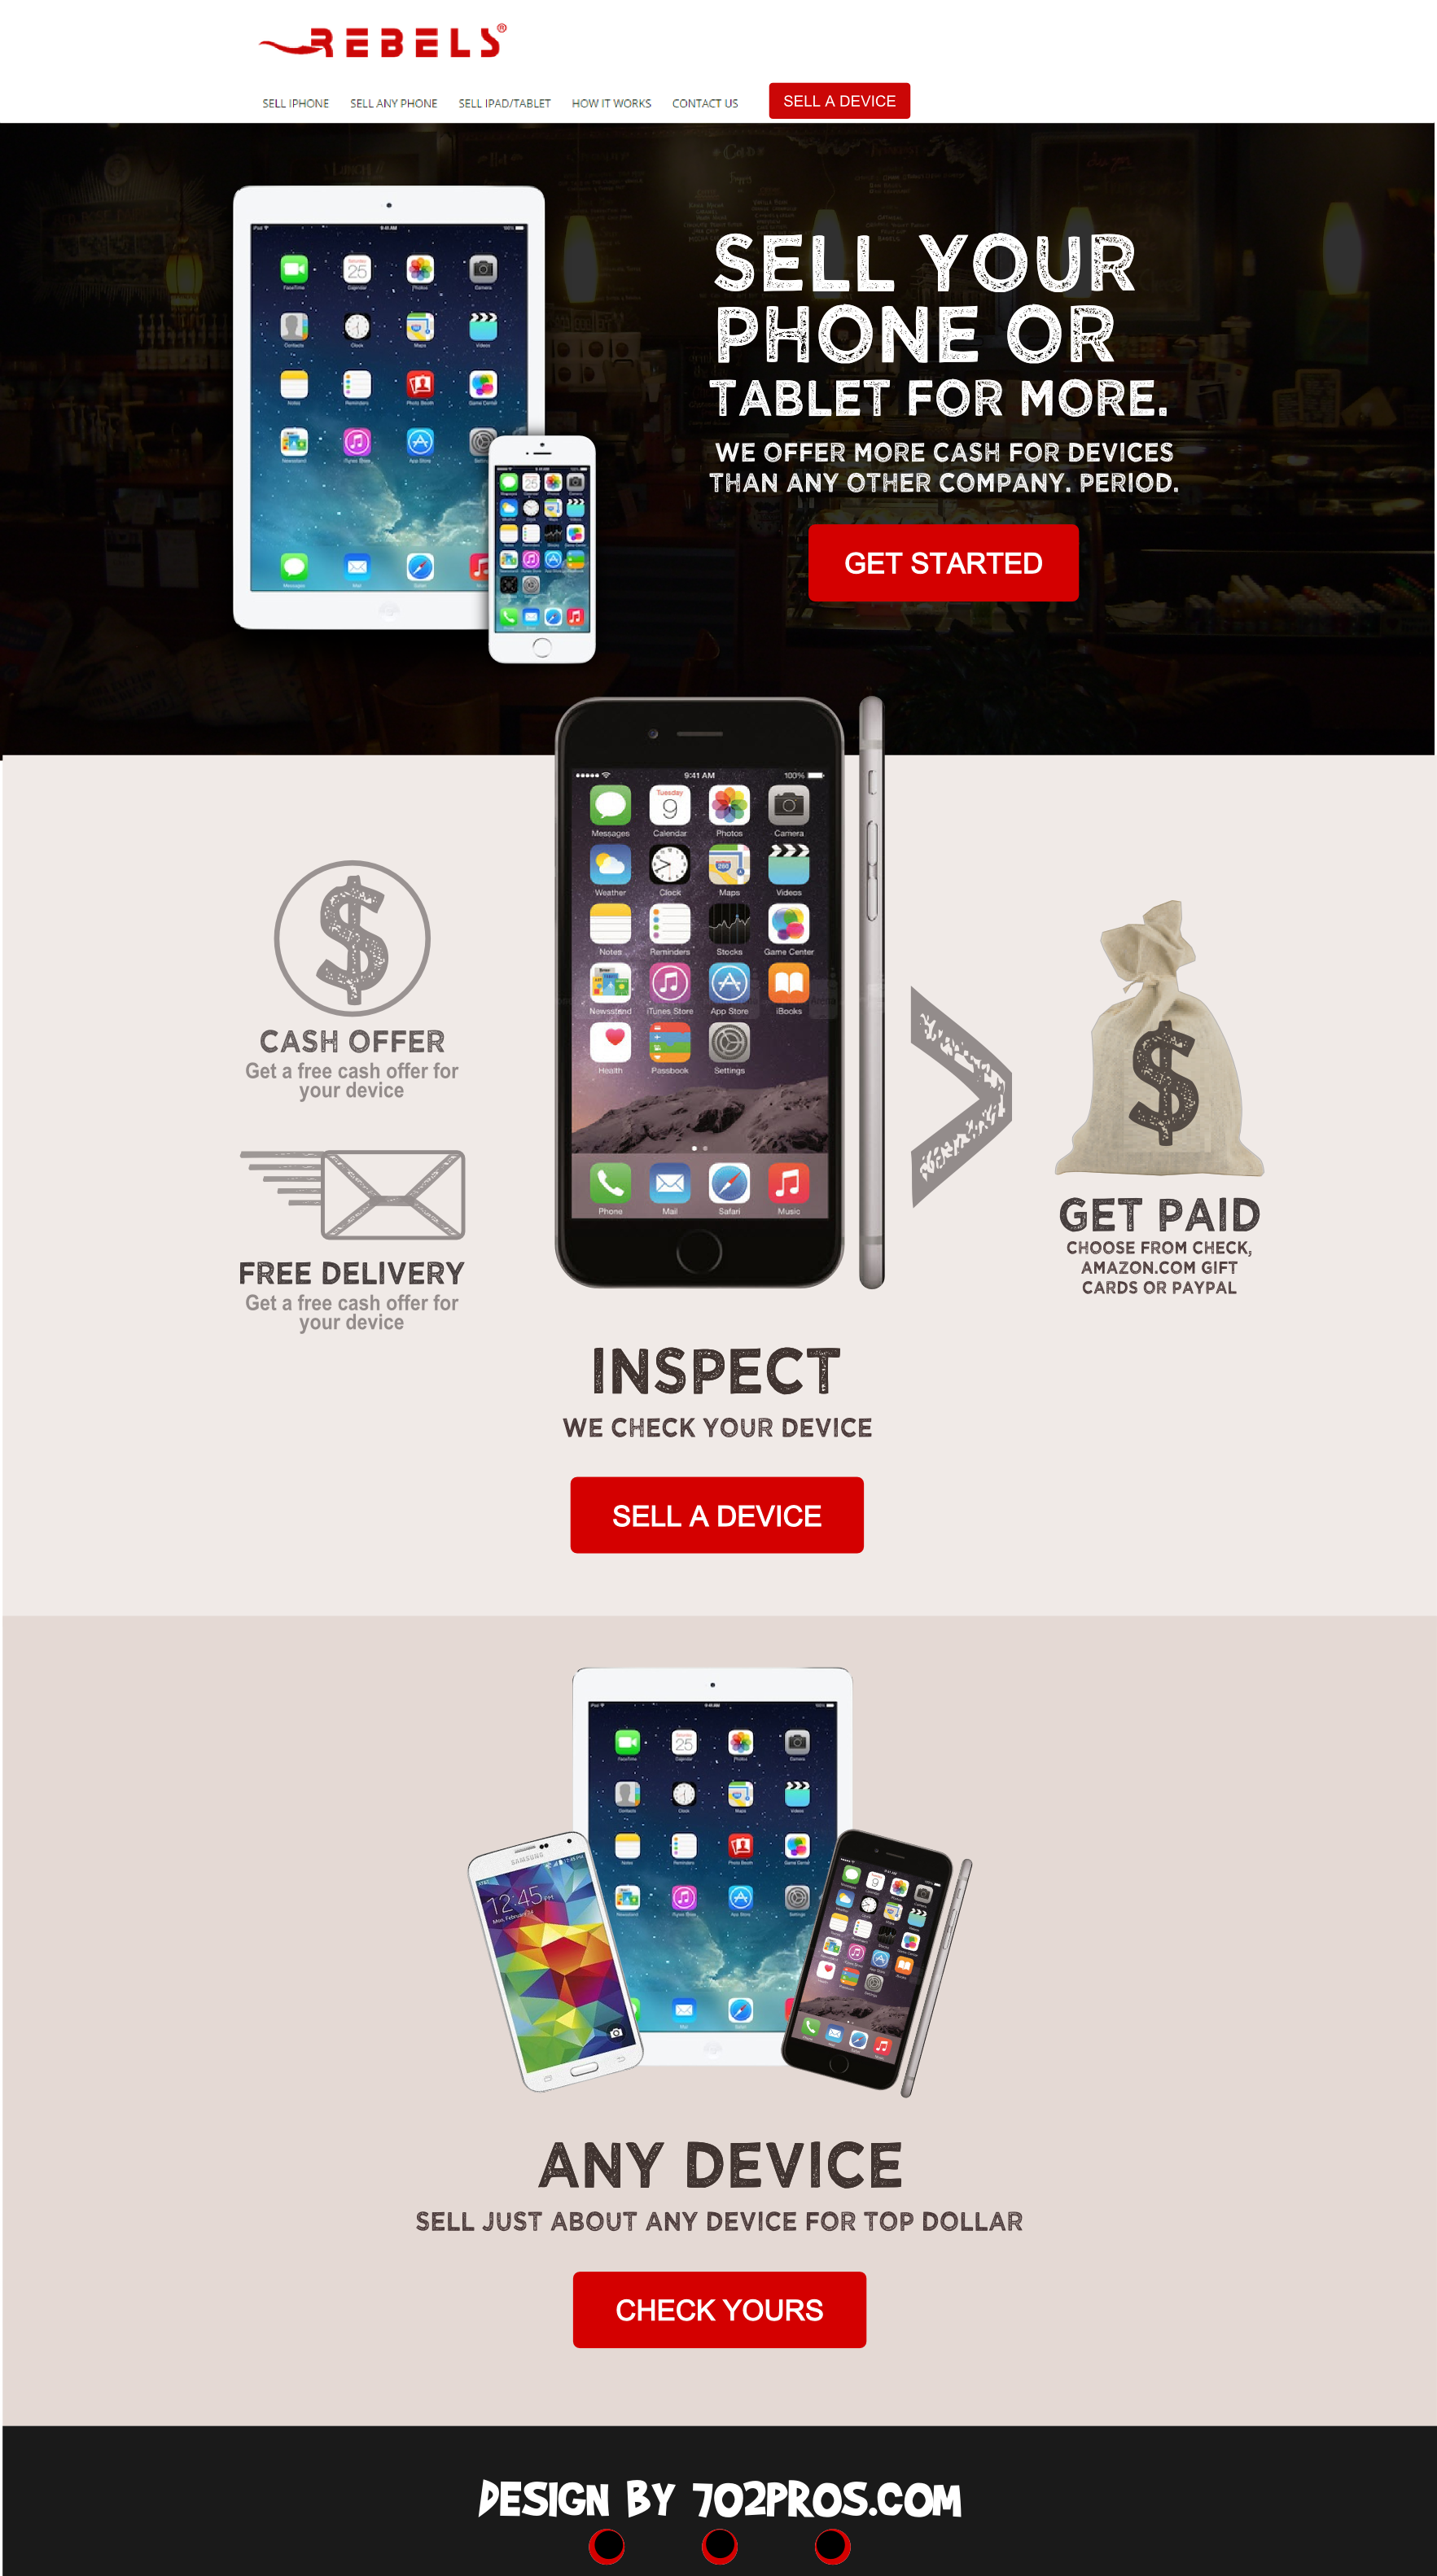 Rebels Wireless Website Design Mockup